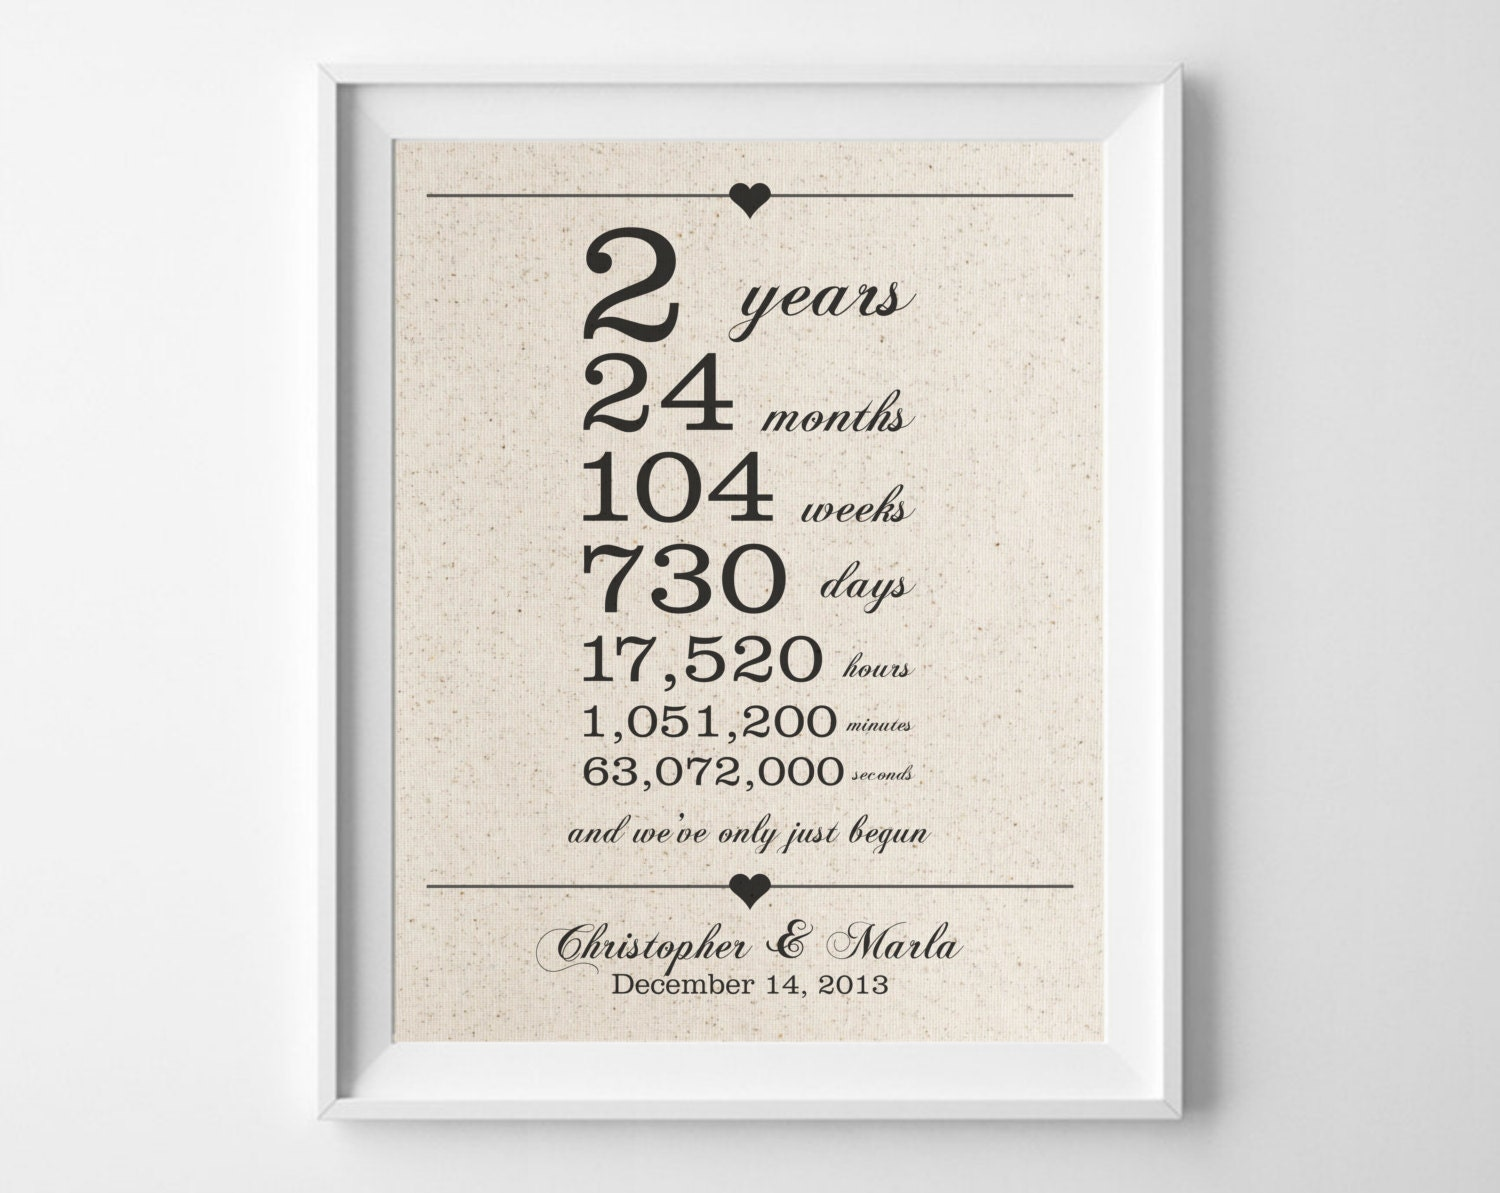 2 Year Wedding Anniversary Ideas Cotton : years together Cotton Anniversary Print 2nd Anniversary